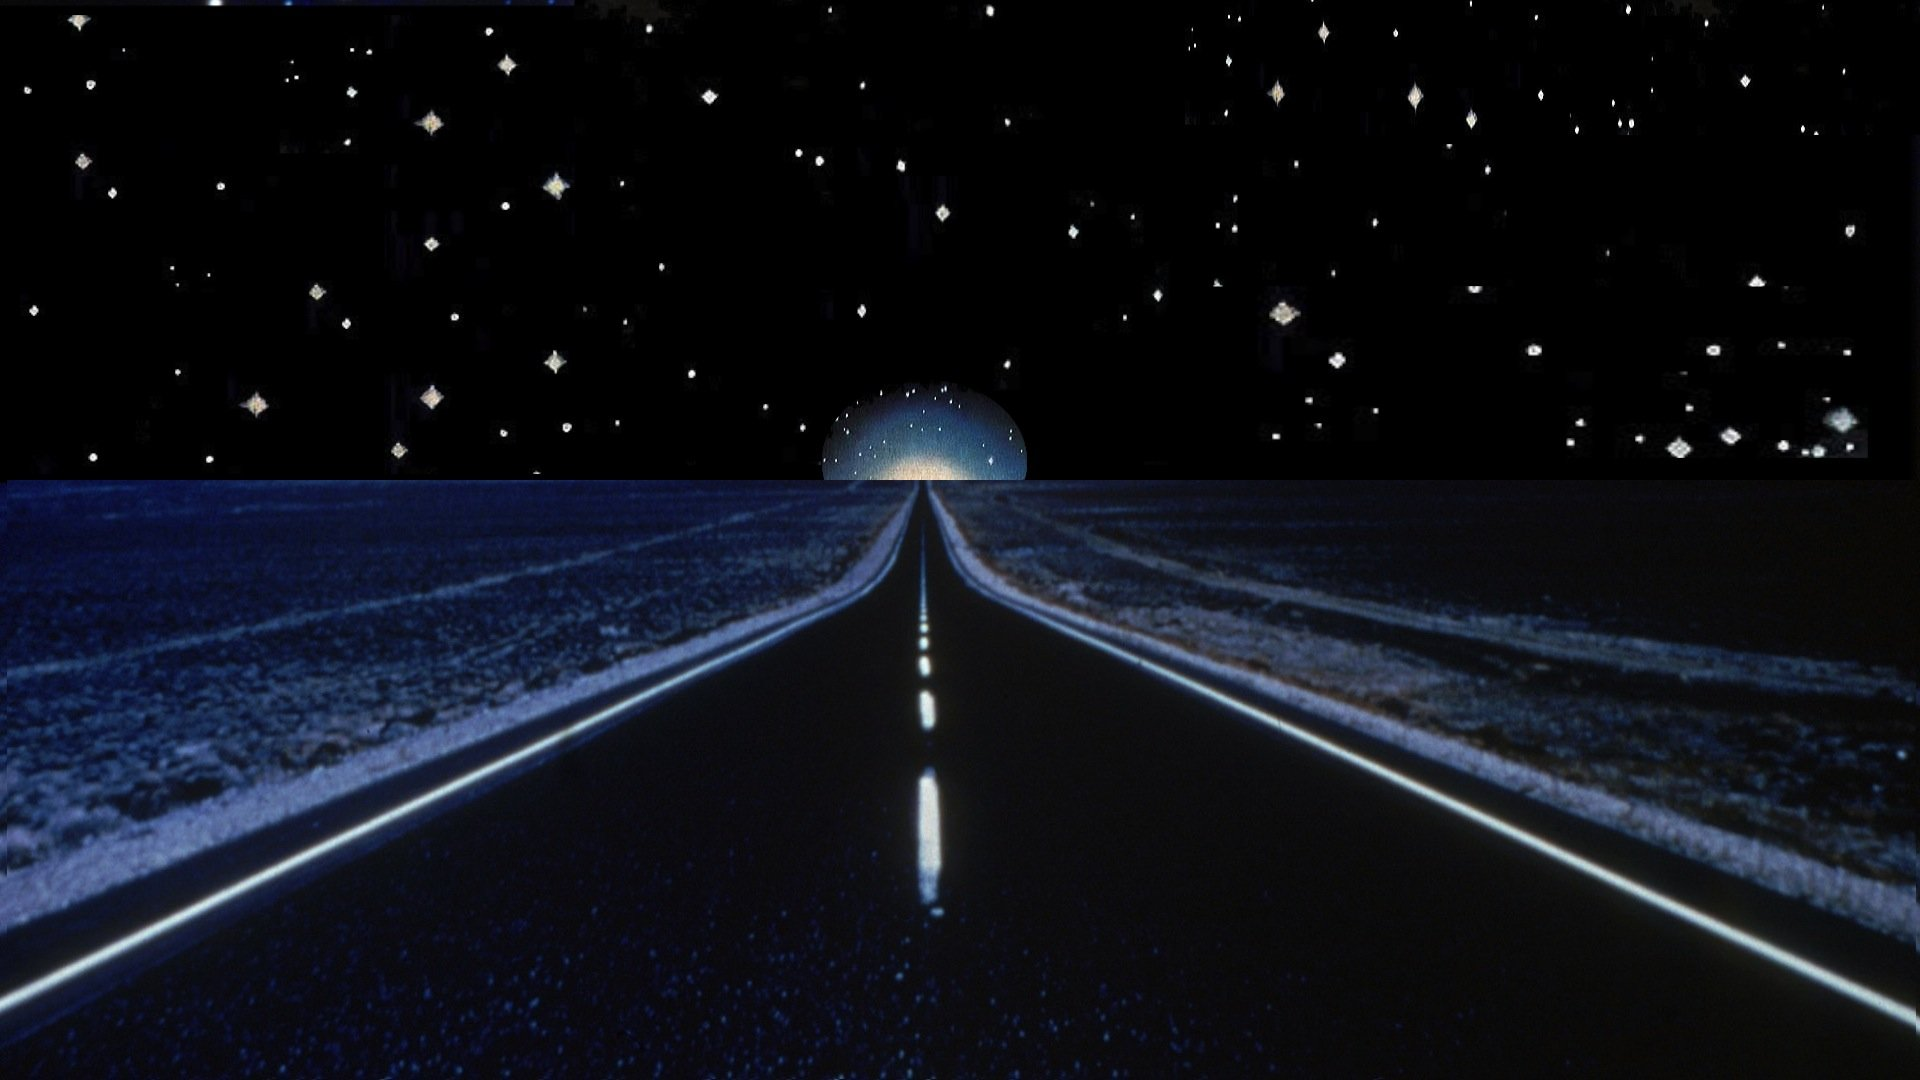 close encounters of the third kind subtitles download